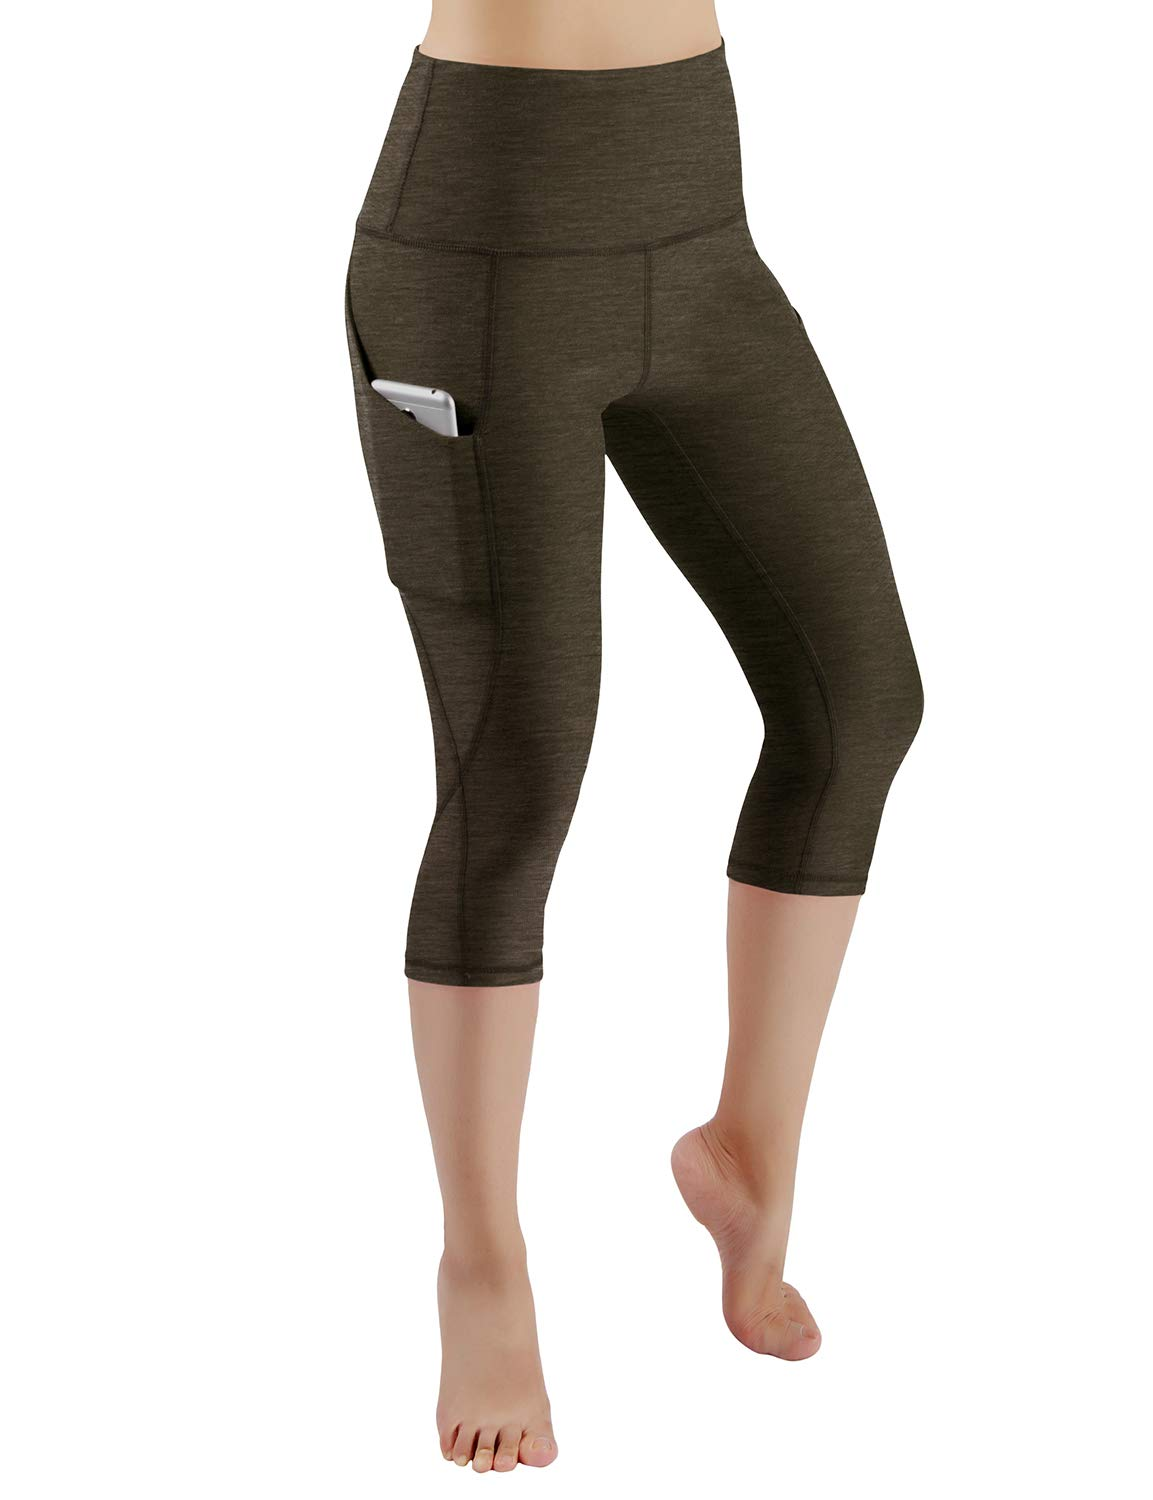 ODODOS High Waist Out Pocket Yoga Capris Pants Tummy Control Workout Running 4 Way Stretch Yoga Leggings,Olive,X-Small by ODODOS (Image #2)